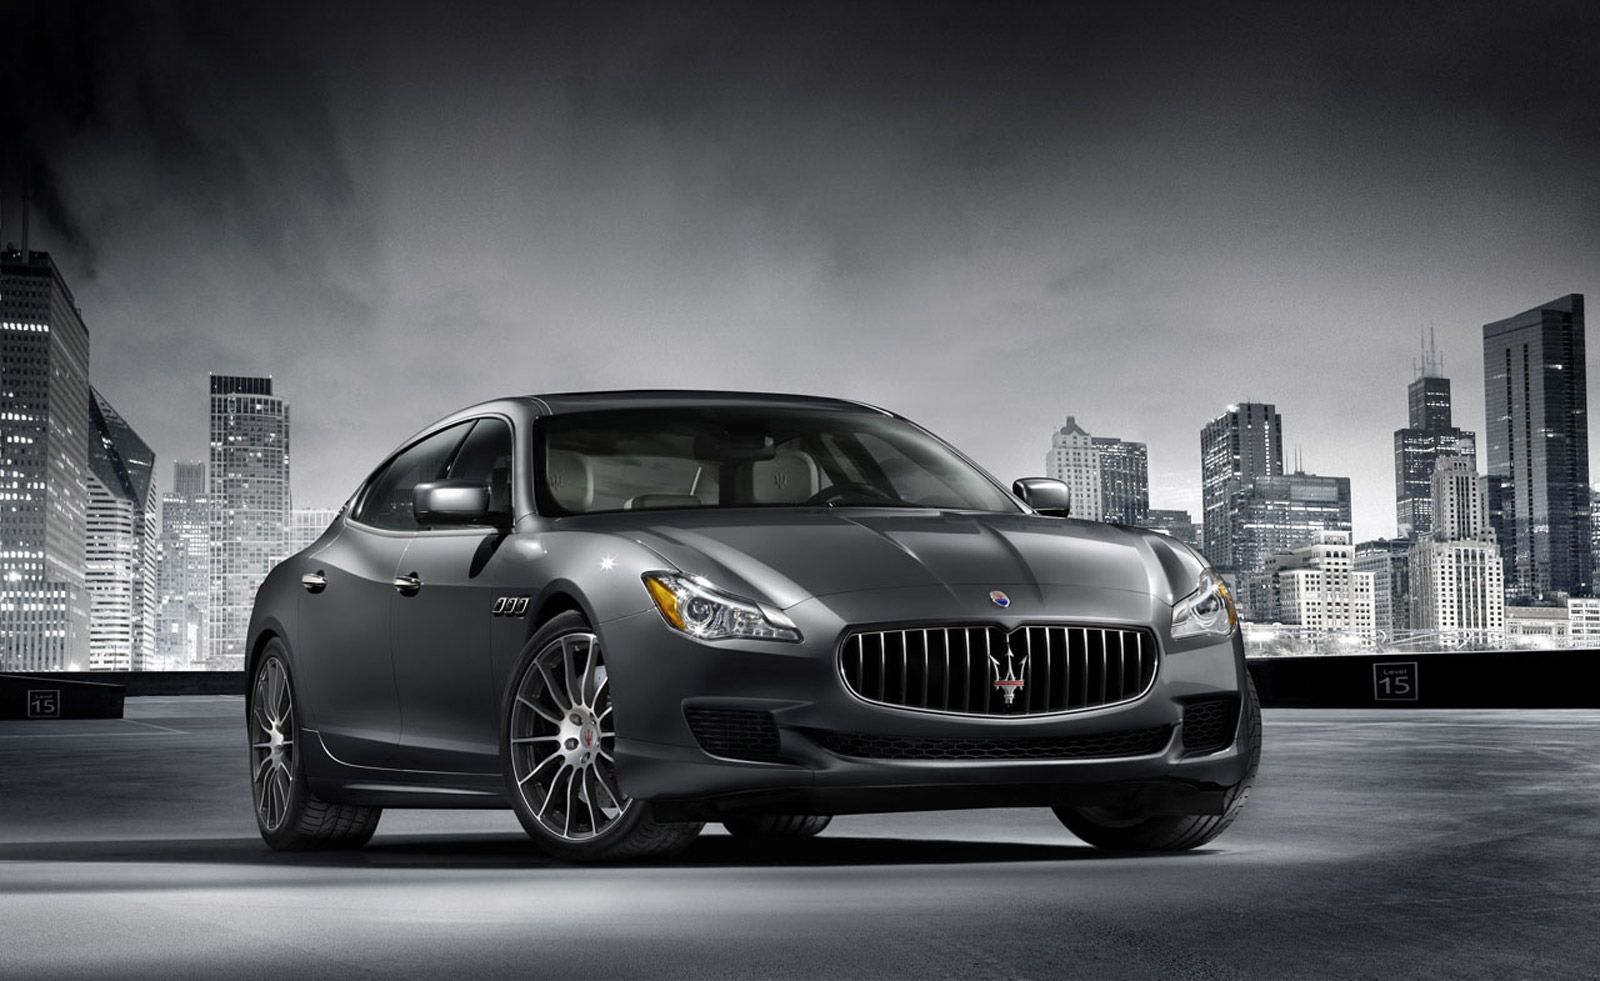 Maserati quattroporte 2 high quality maserati quattroporte pictures - The 25 Best Maserati Quattroporte Gts Ideas On Pinterest Maserati Quattroporte Maserati Auto And Maserati